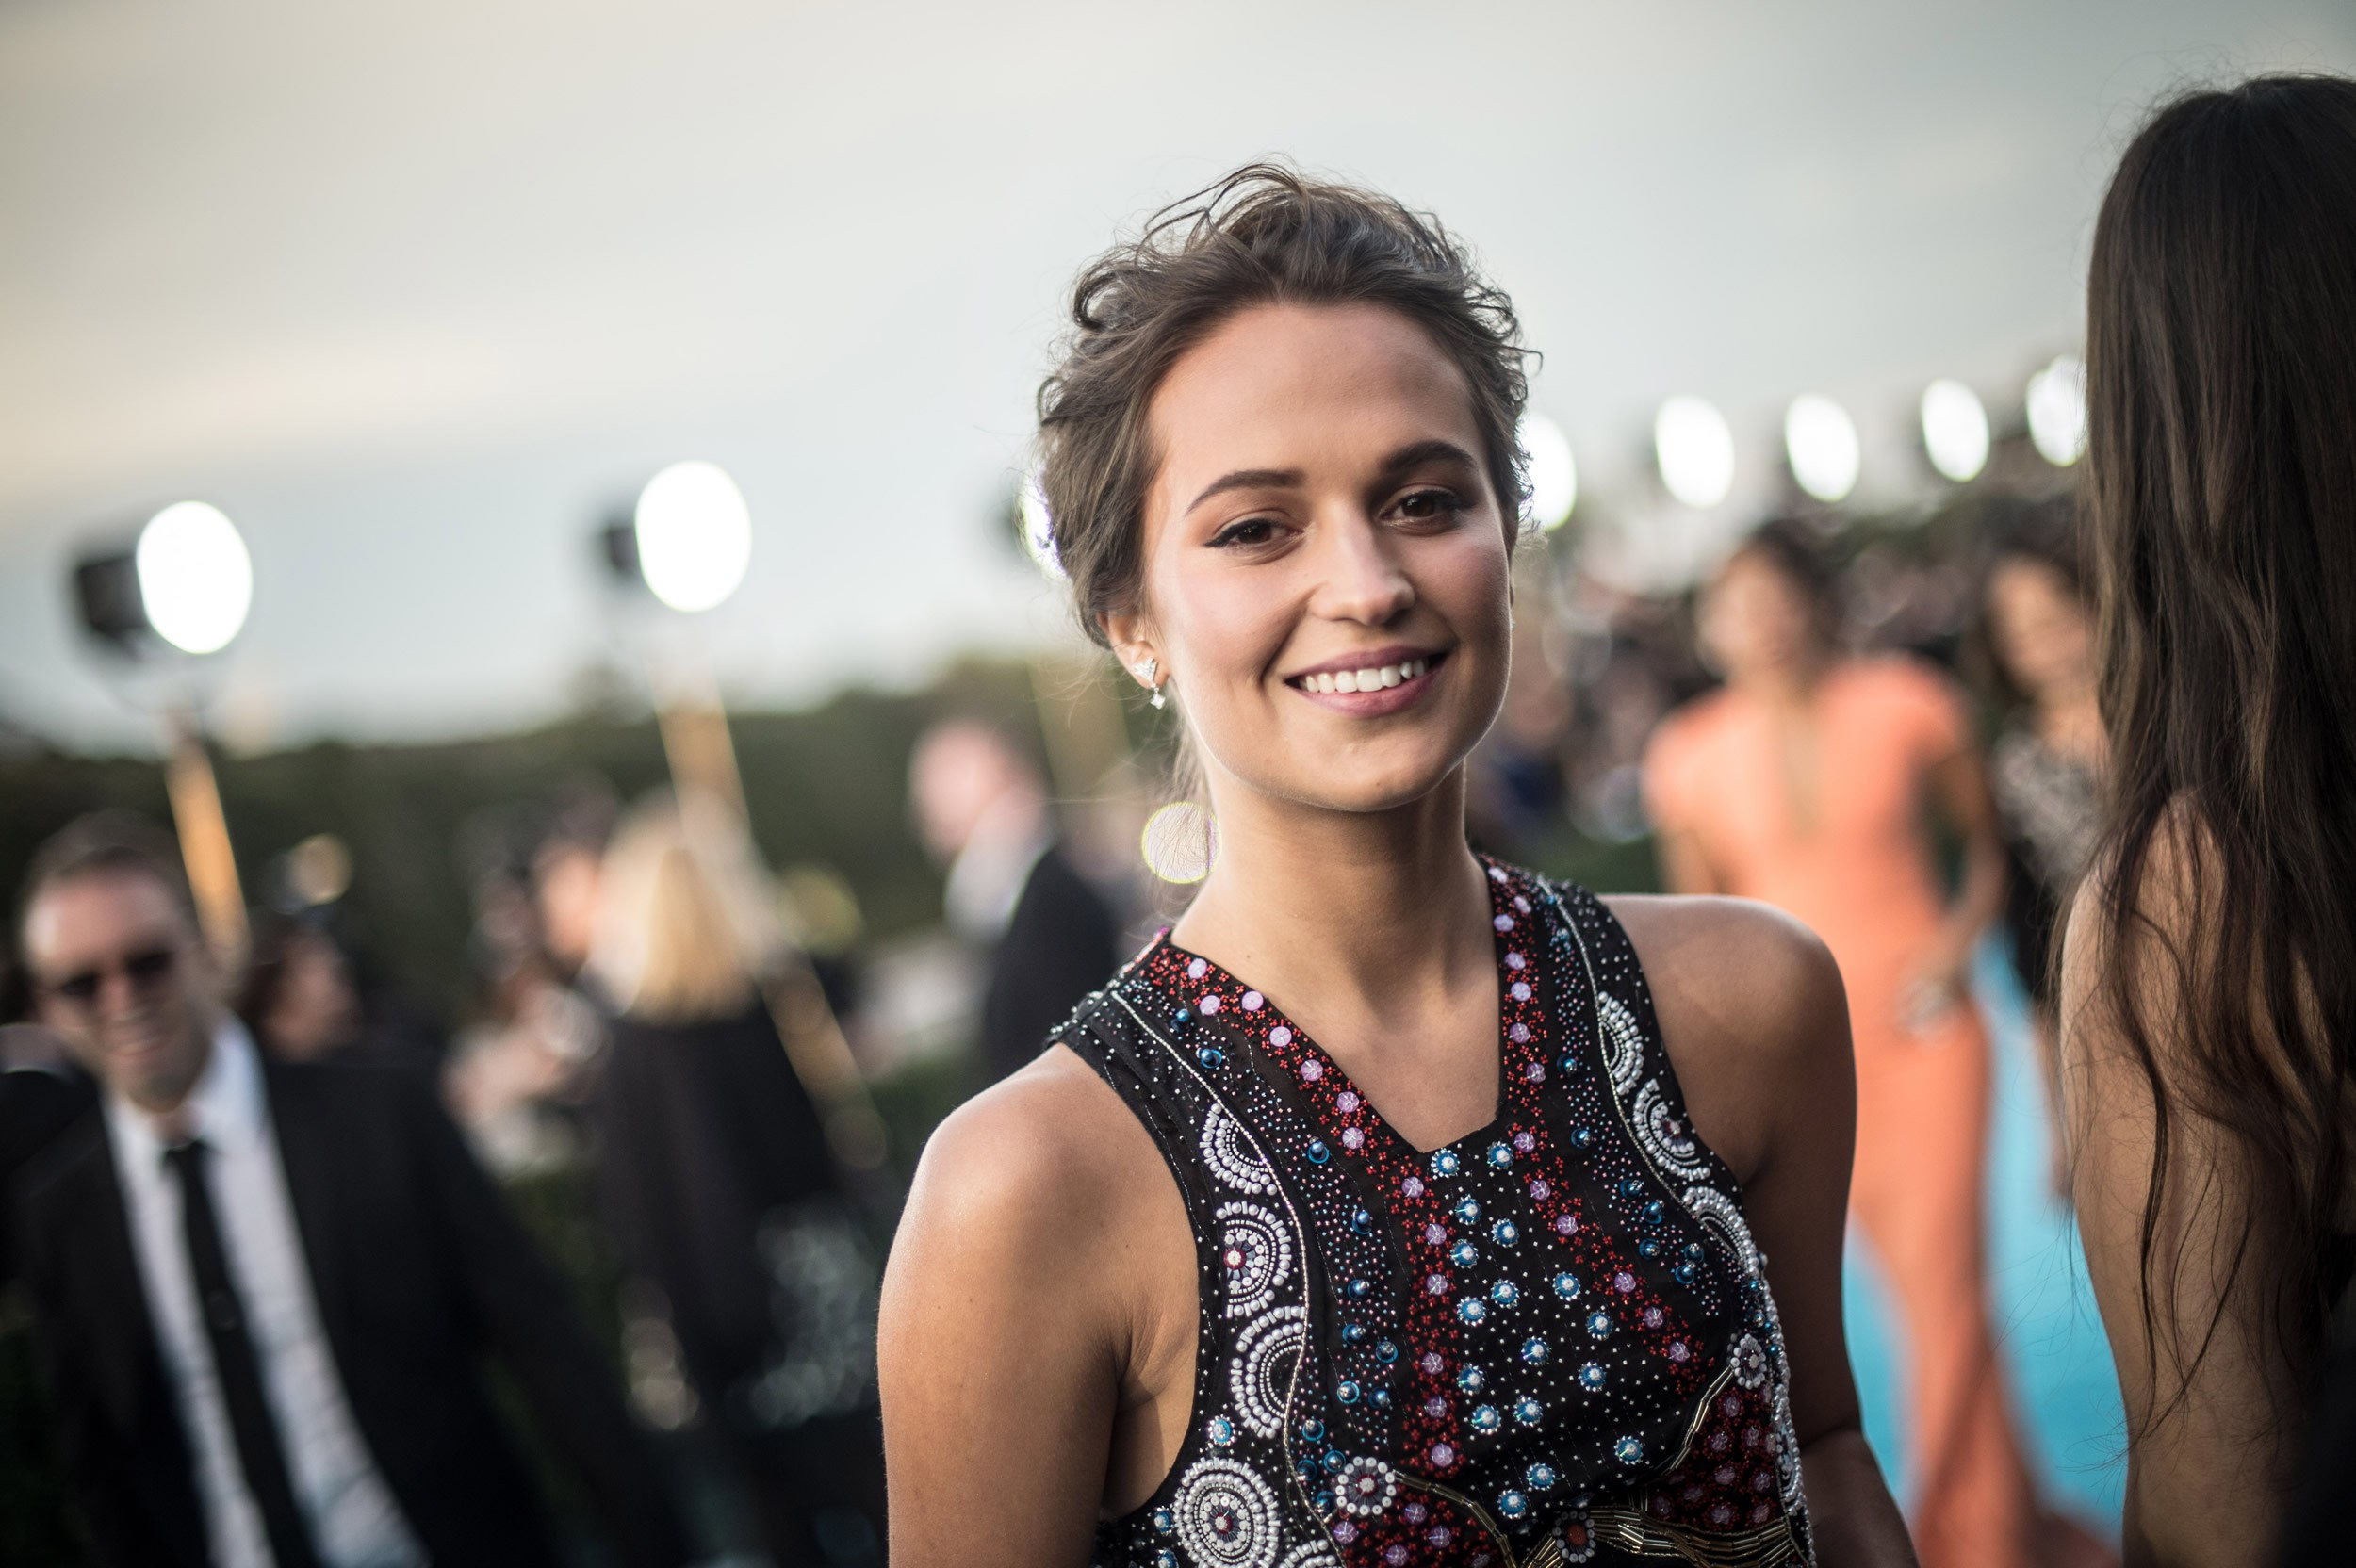 amazing alicia vikander smiling face look free hd mobile desktop background wallpaper